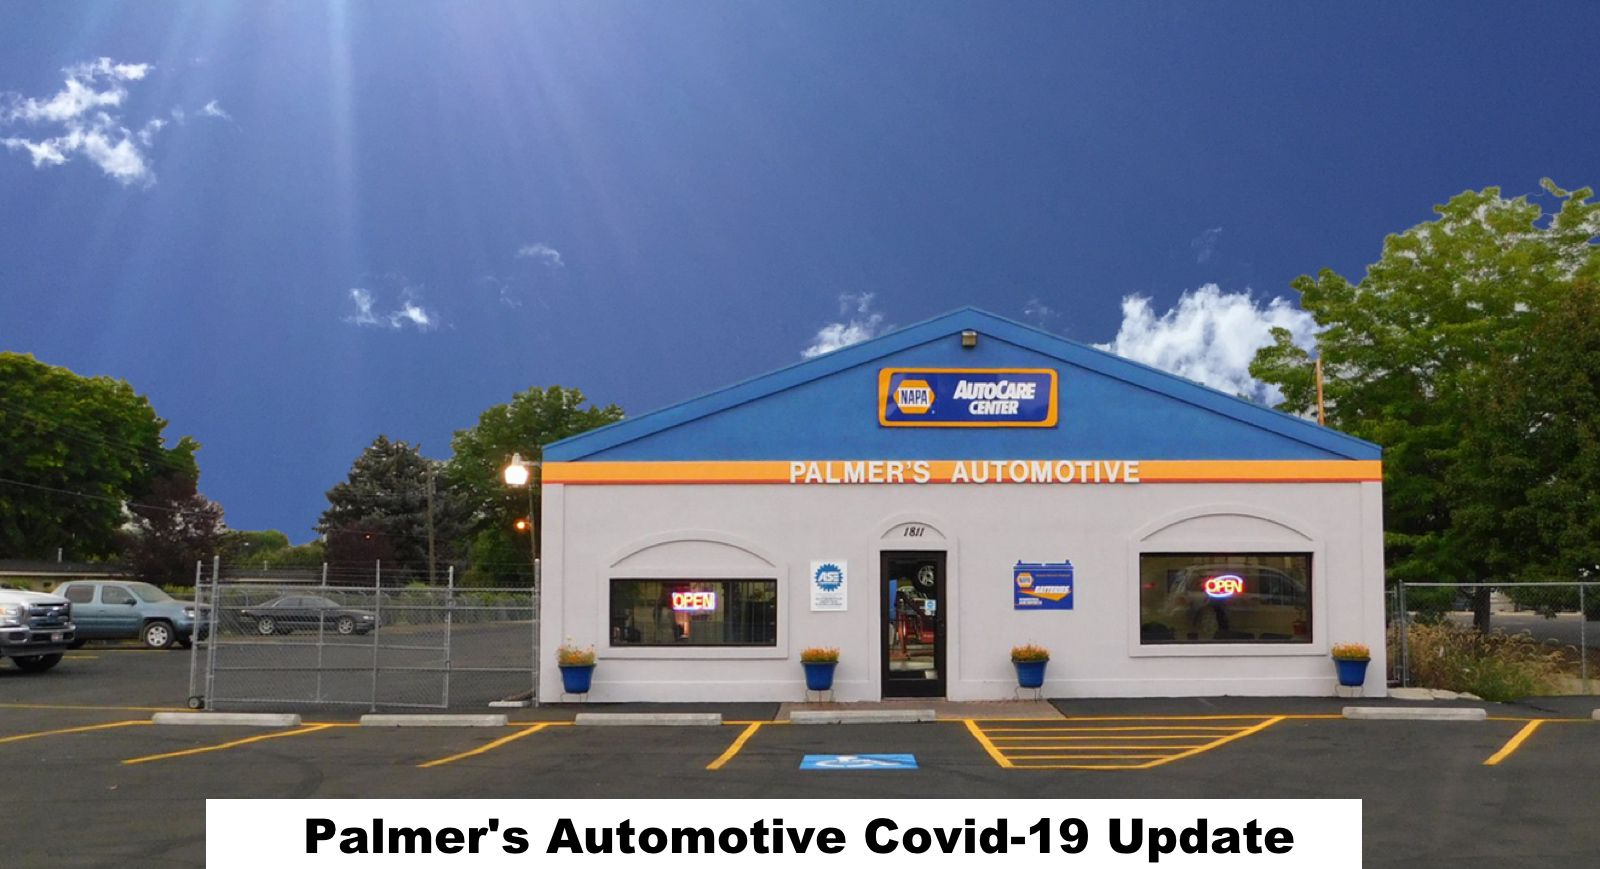 Palmer's Automotive COVID-19 update